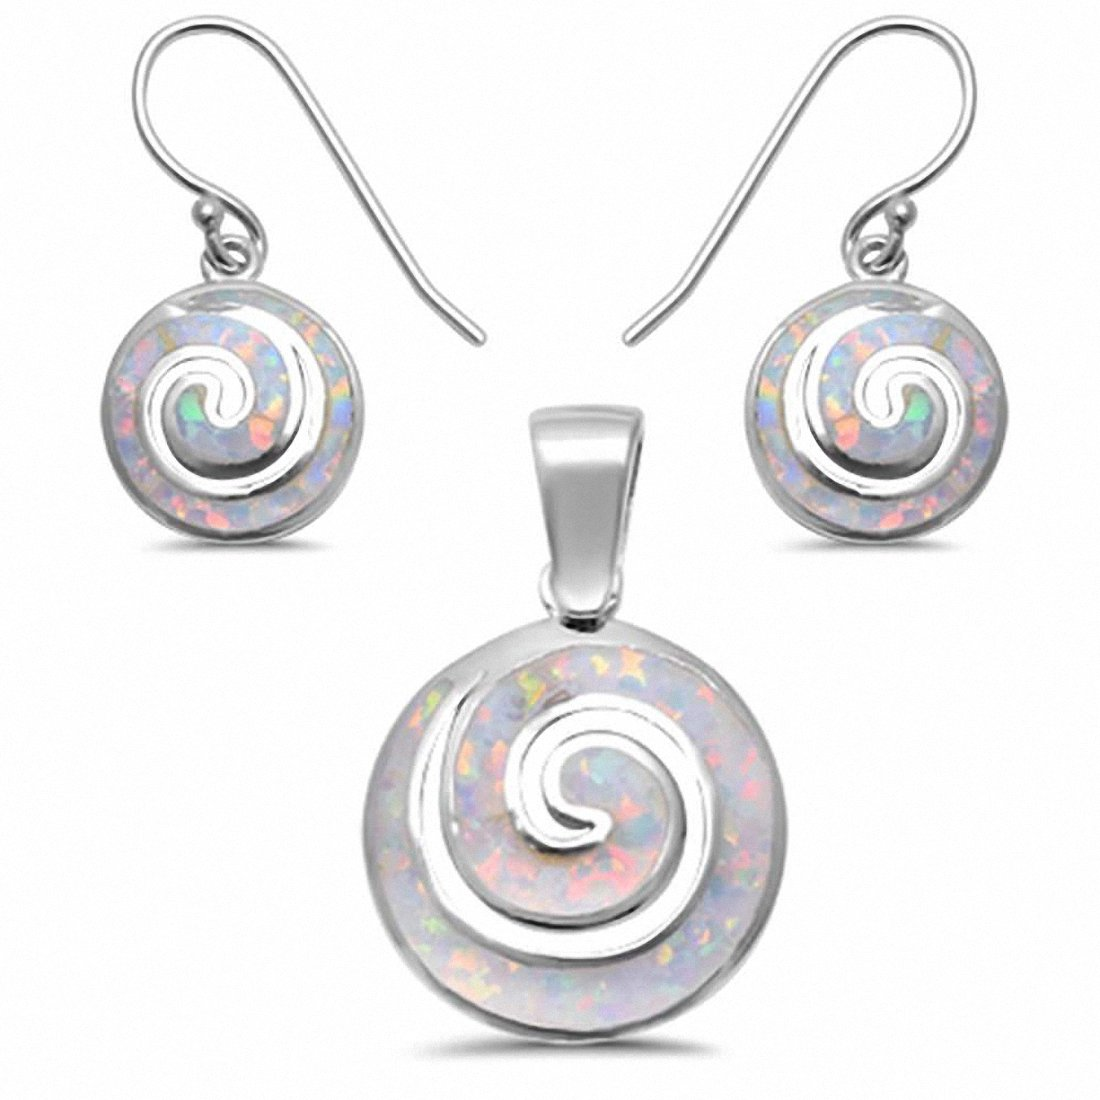 Swirl Spiral Jewelry Set Created Opal 925 Sterling Silver Pendant Earring Choose Color